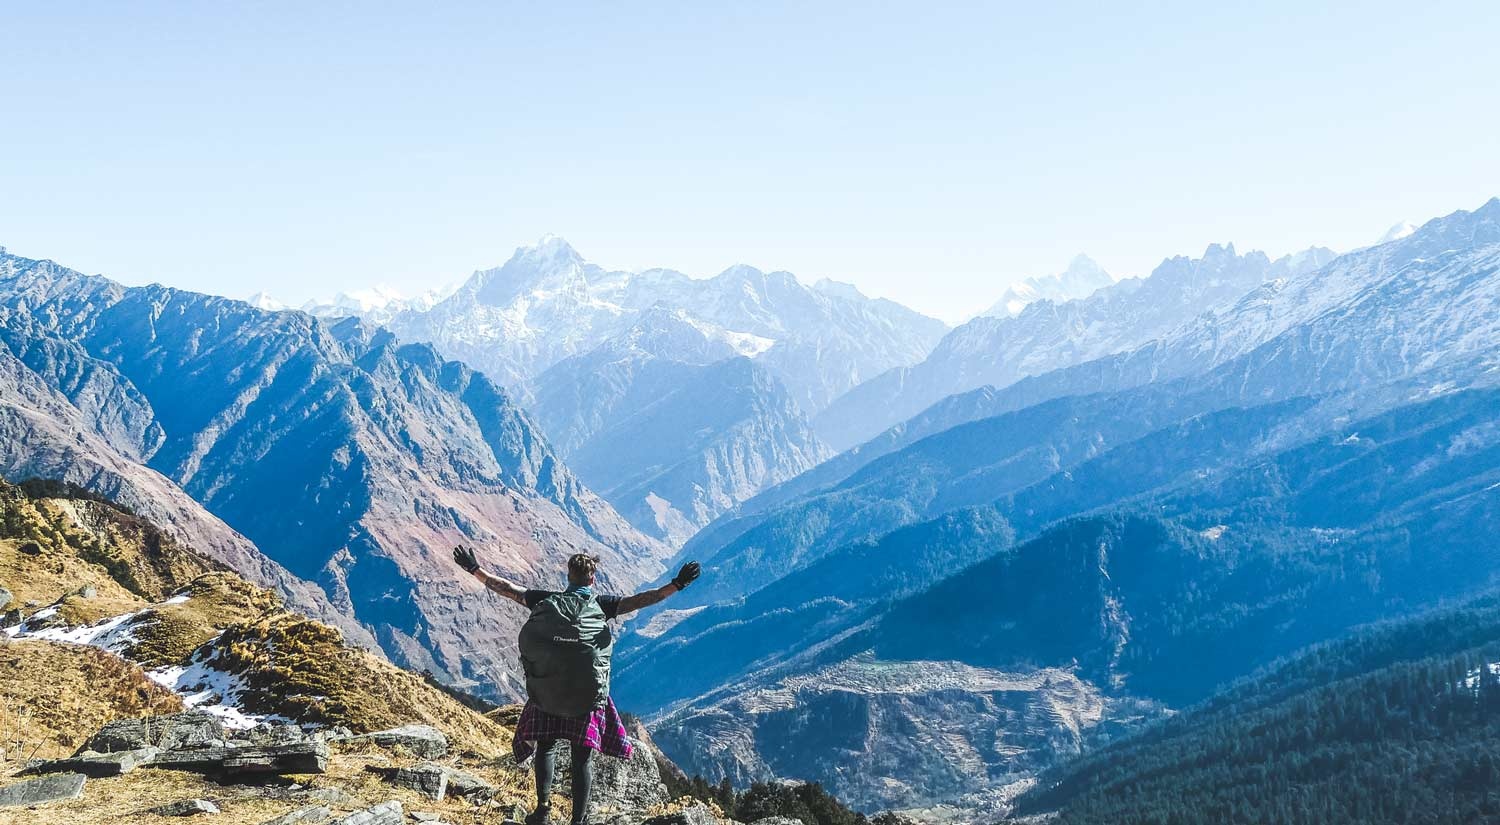 The best Himalayan travel adventure on earth: 3 day Kuari Pass Trek. A man stands with his arms spread on top of a mountain looking out over the Himalayas